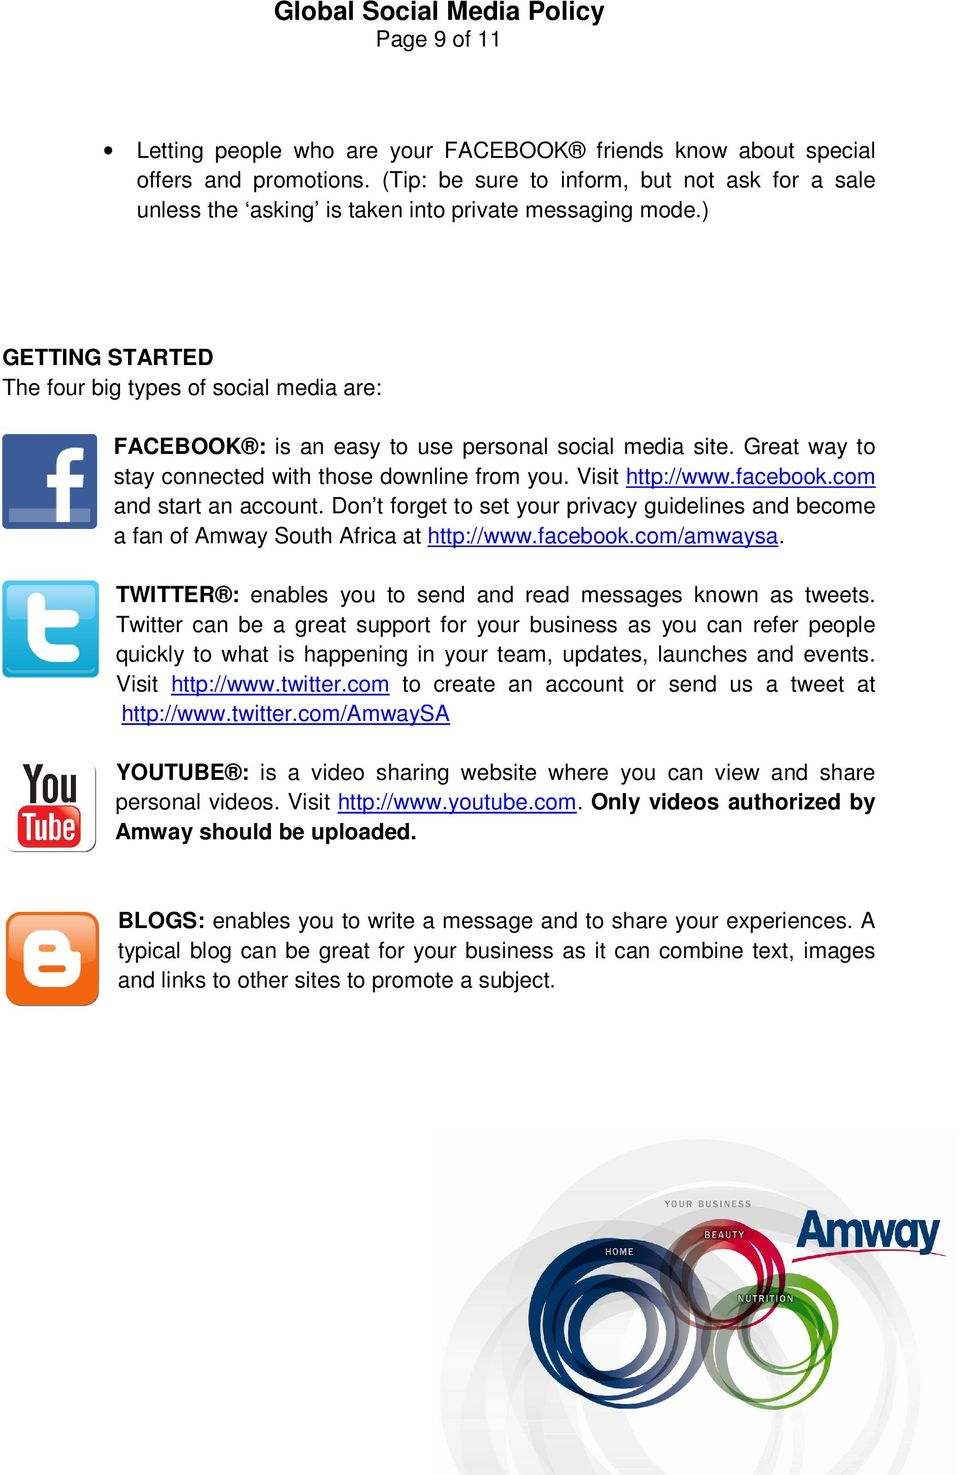 ) GETTING STARTED The four big types of social media are: FACEBOOK : is an easy to use personal social media site. Great way to stay connected with those downline from you. Visit http://www.facebook.